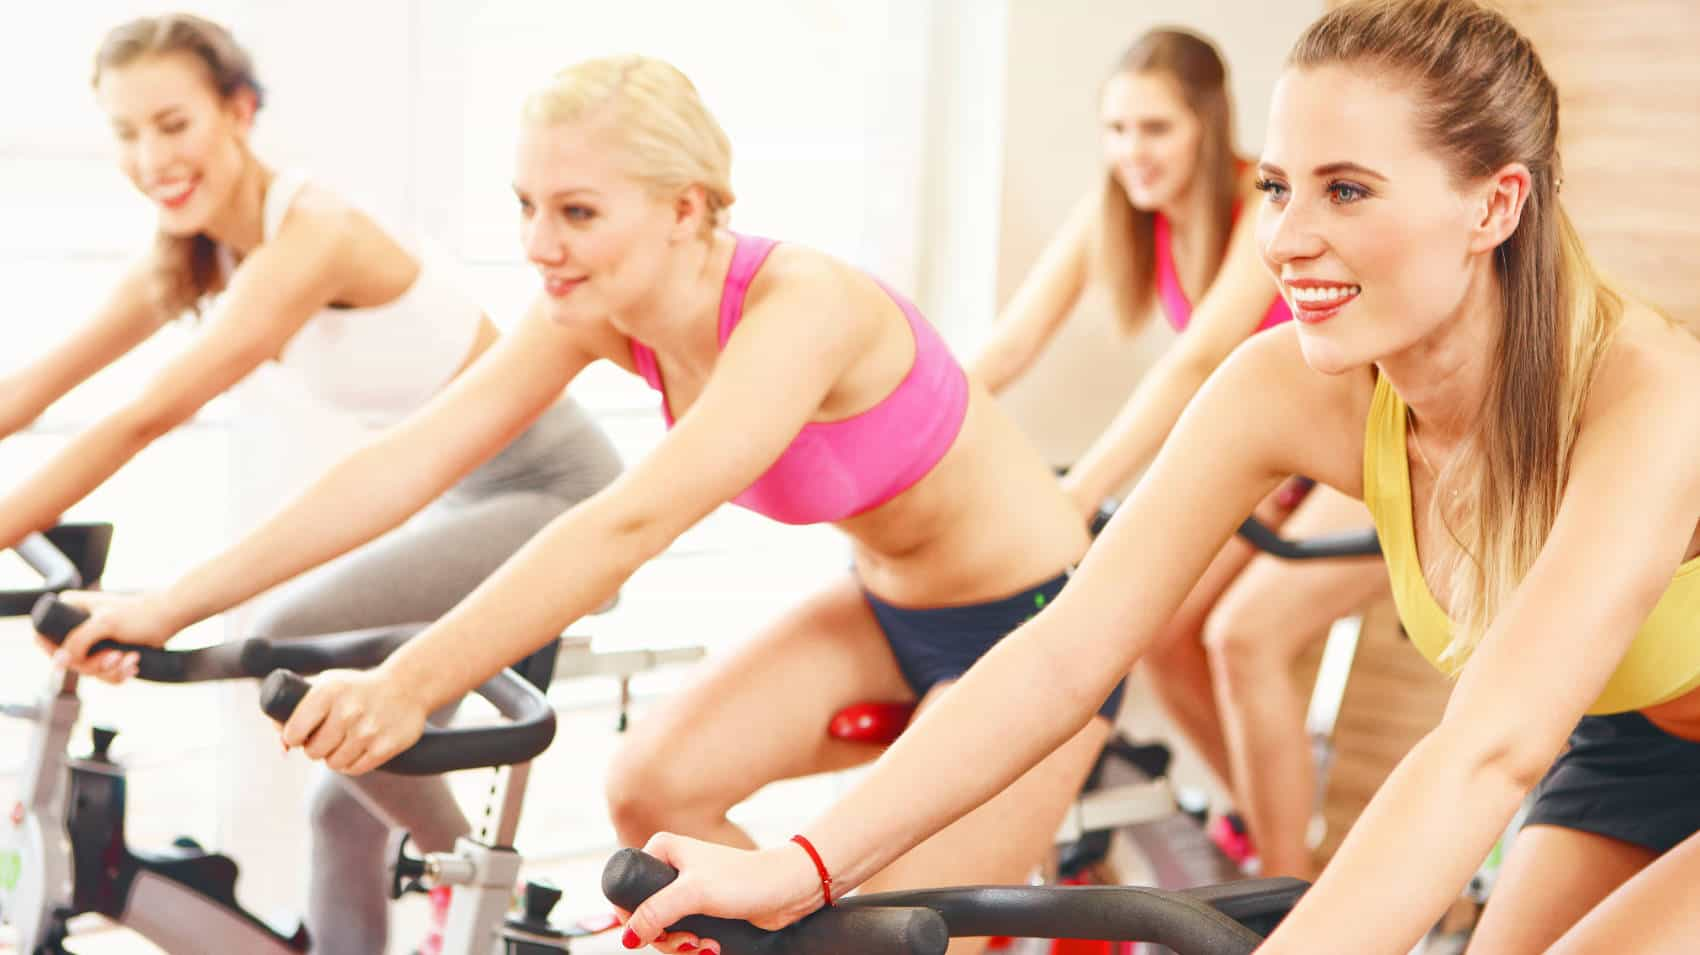 Switch Up Your Cardio With Spin Classes